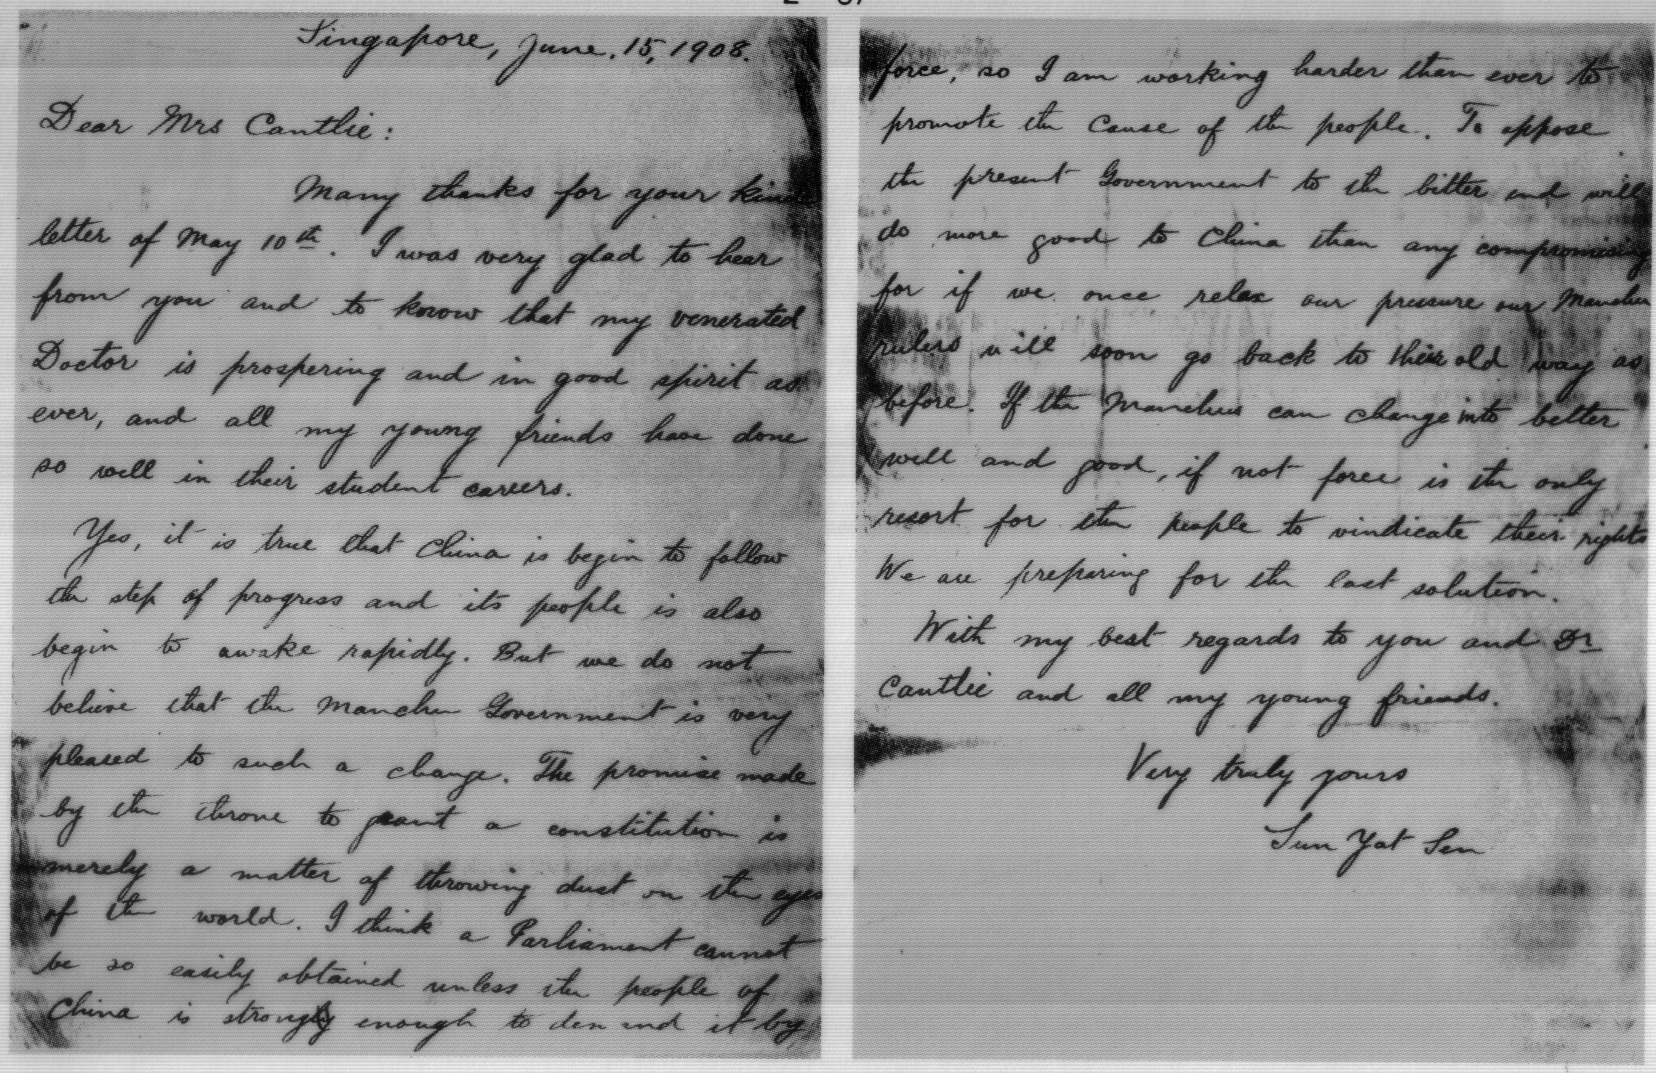 filea letter to mrs cantile that sun yat sen wrote in english